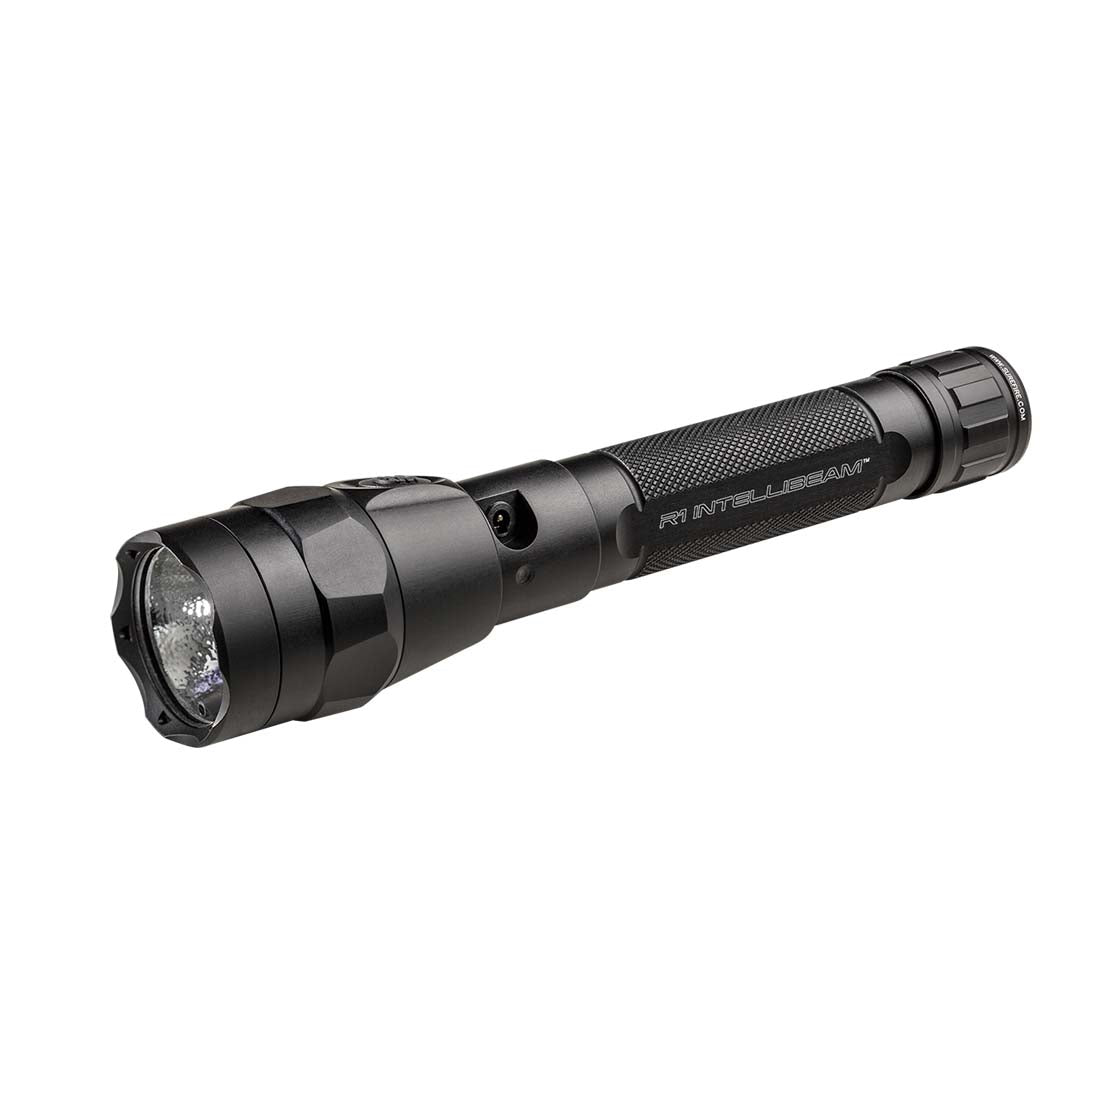 Surefire R1 Lawman with IntelliBeam Auto Adjusting Variable Output Led  Flashlight